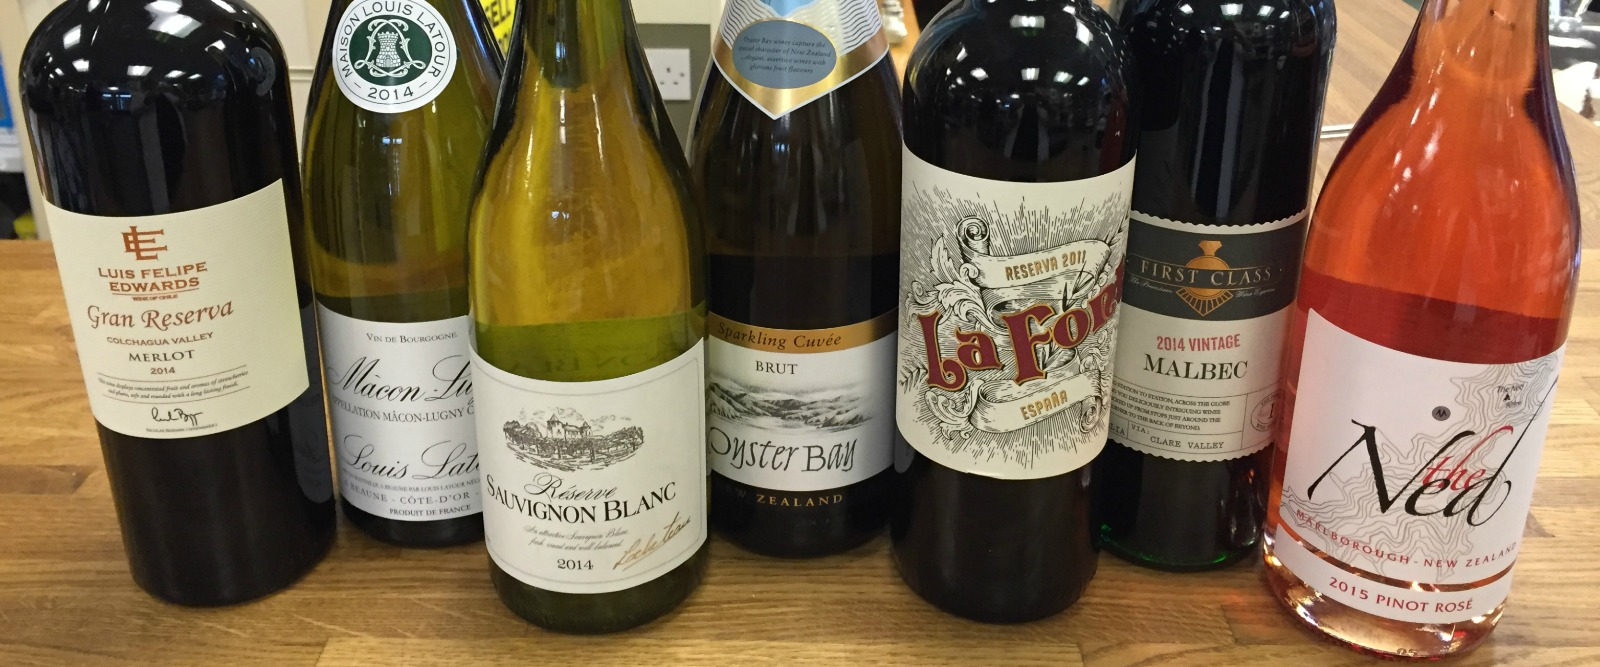 Wide range of quality wines in store